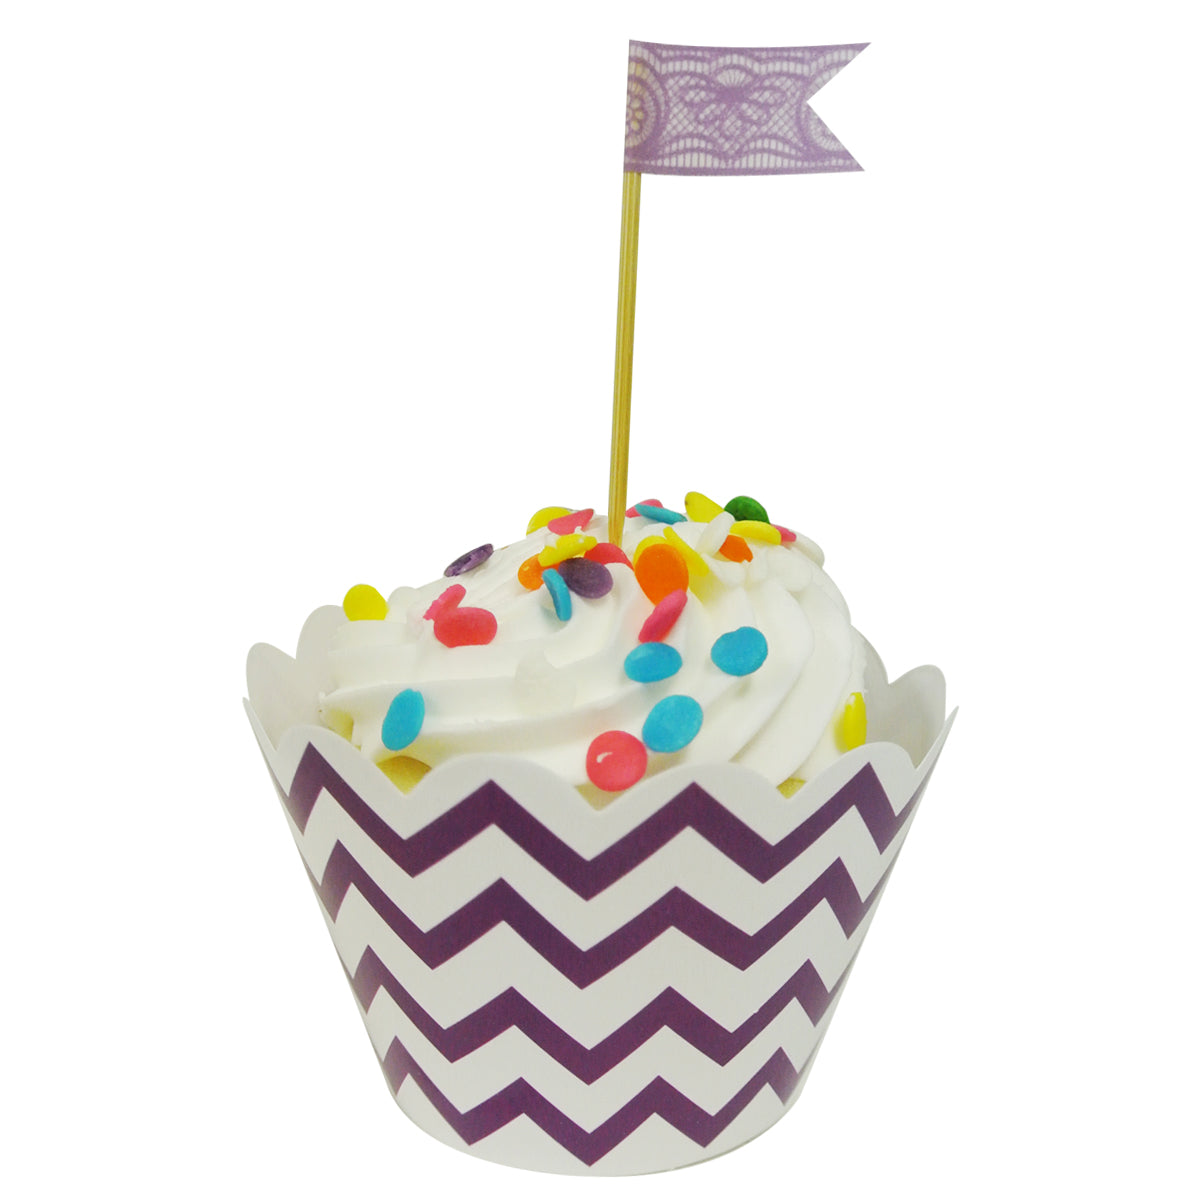 Wrapables Standard Size Chevron Cupcake Wrappers (Set of 20)